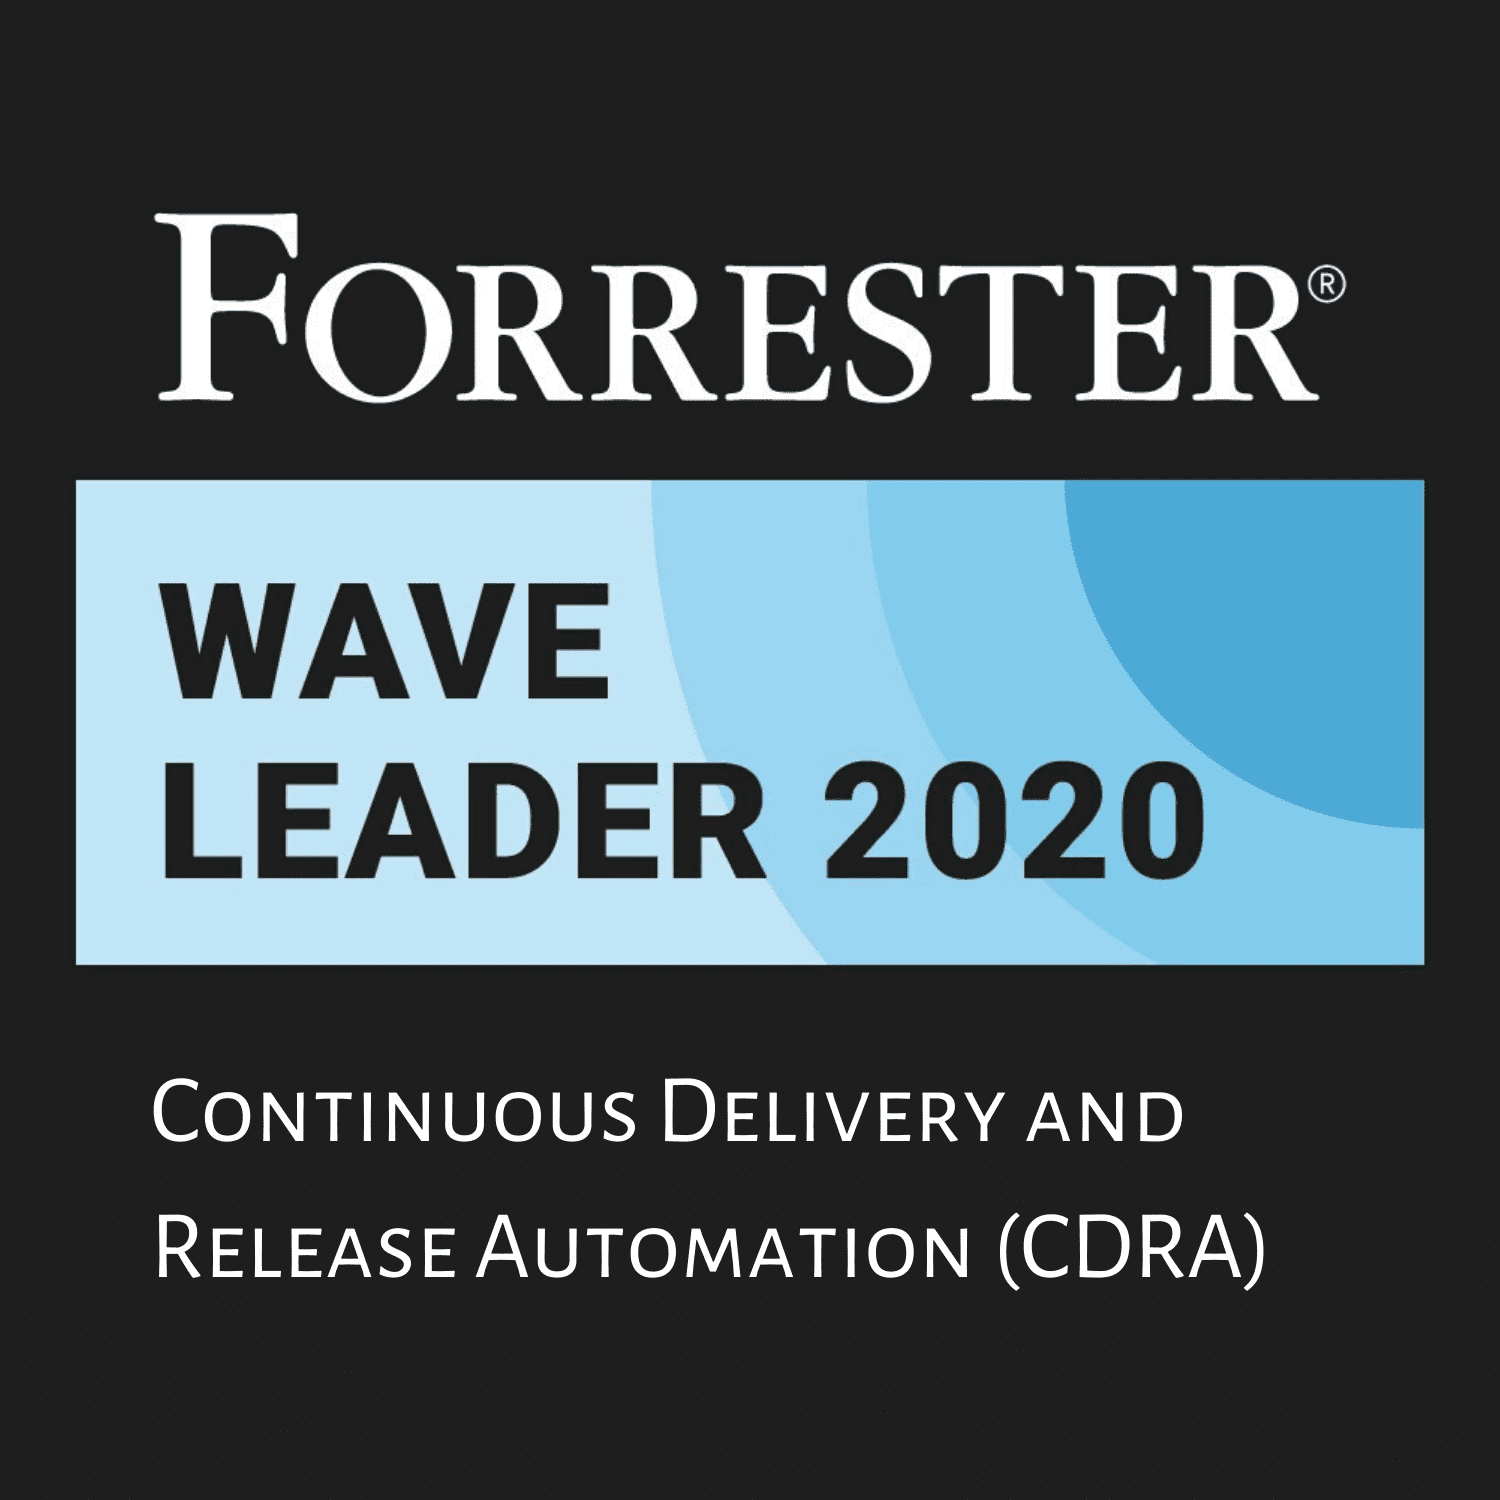 Forrester award for Continuous Delivery and Release Automation (CDRA)